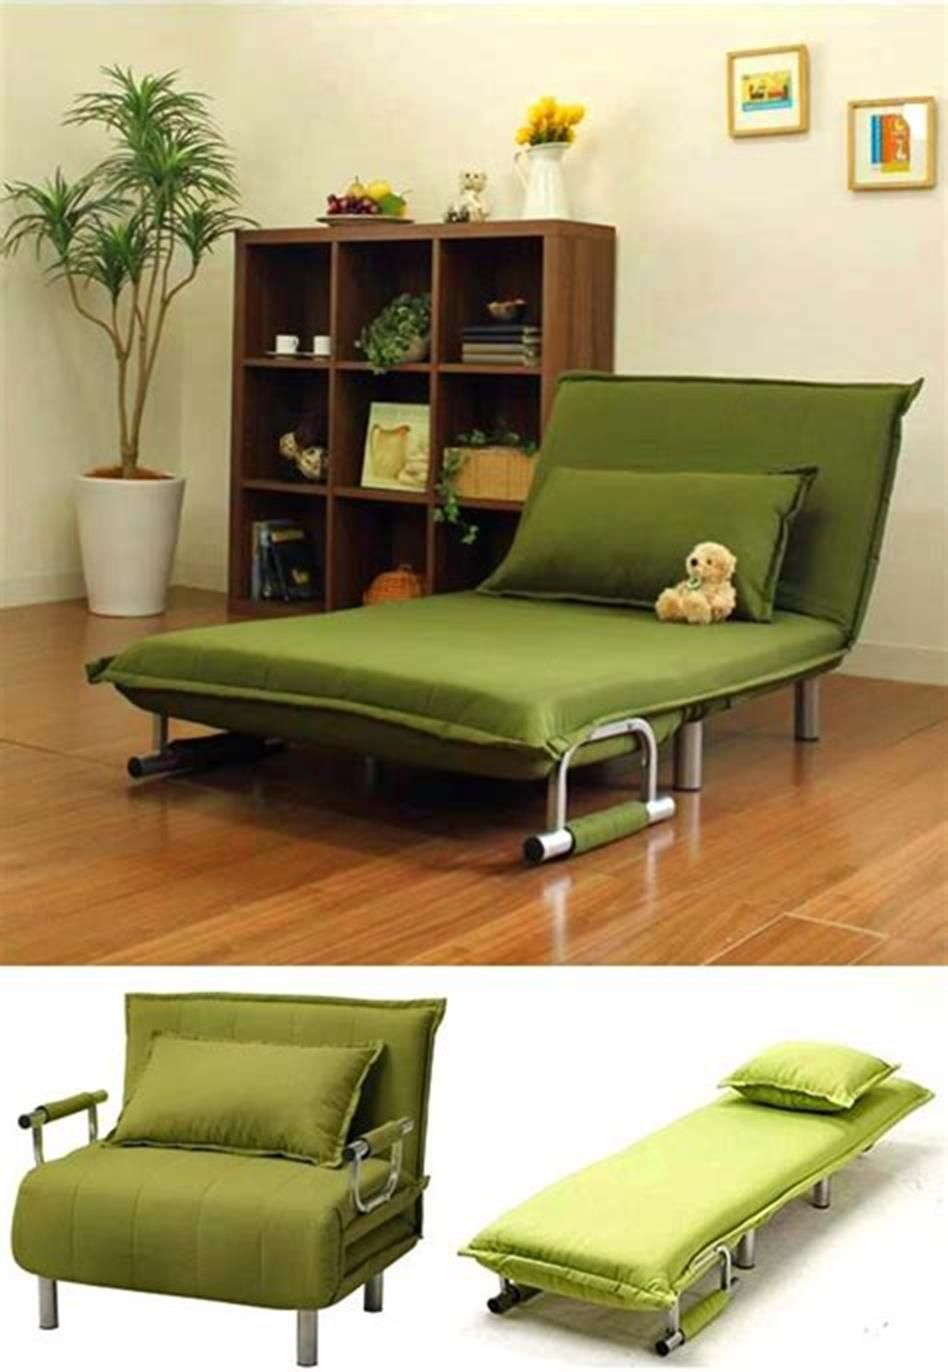 50 amazing ideas furniture for small spaces youll love